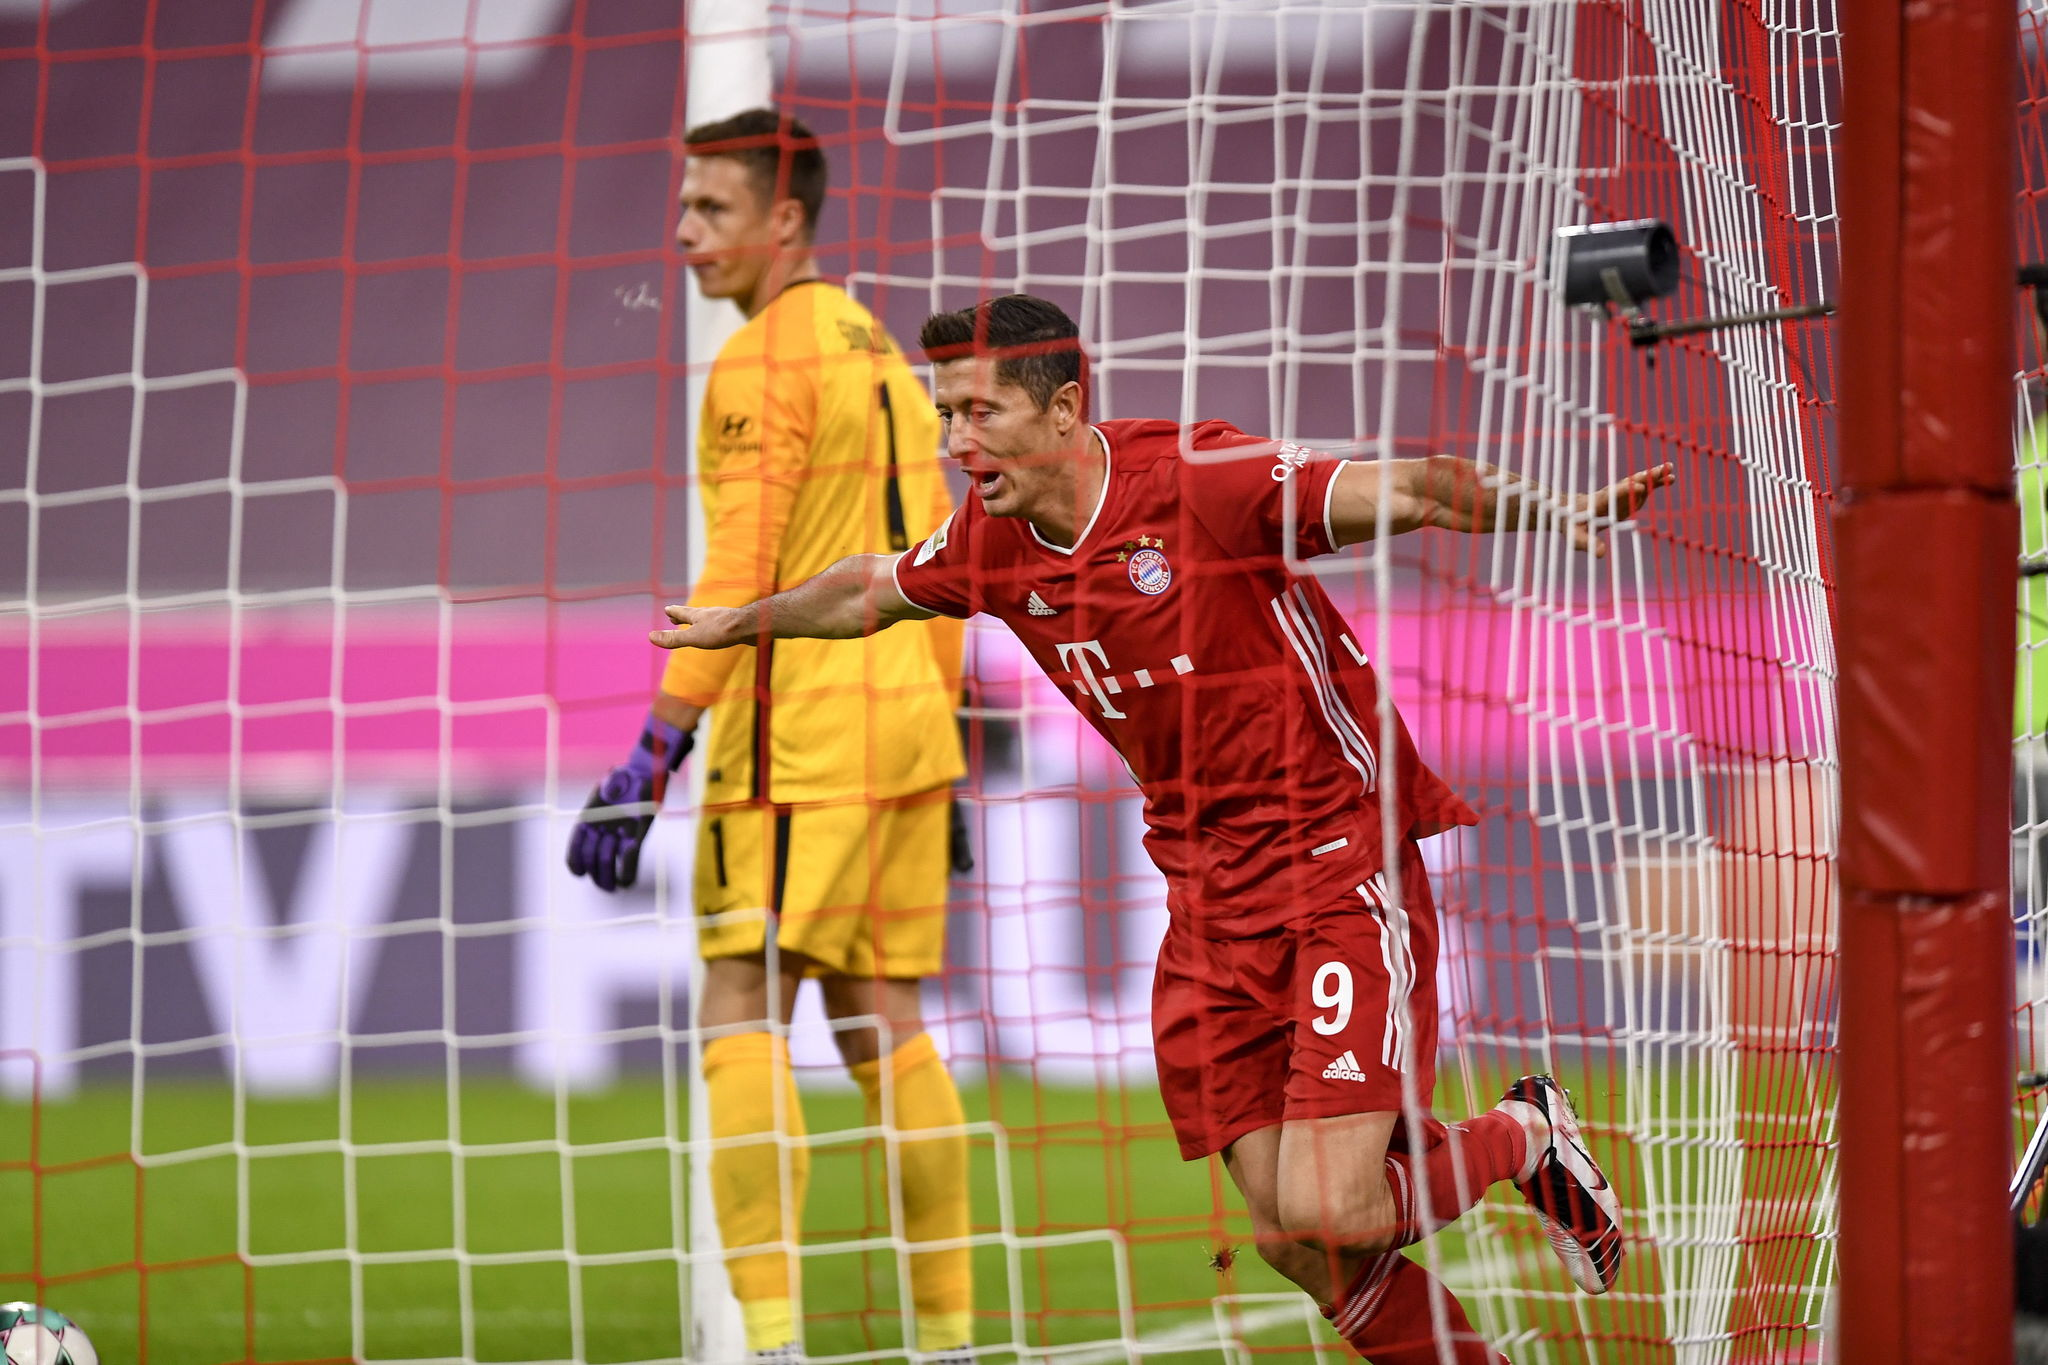 Munich (Germany), 04/10/2020.- Bayerns Robert lt;HIT gt;Lewandowski lt;/HIT gt; celebrates after scoring a goal during the German Bundesliga soccer match between Bayern Munich and Hertha BSC Berlin in Munich, Germany, 04 October 2020. (Alemania) EFE/EPA/LUKAS BARTH-TUTTAS CONDITIONS - ATTENTION: The DFL regulations prohibit any use of photographs as image sequences and/or quasi-video